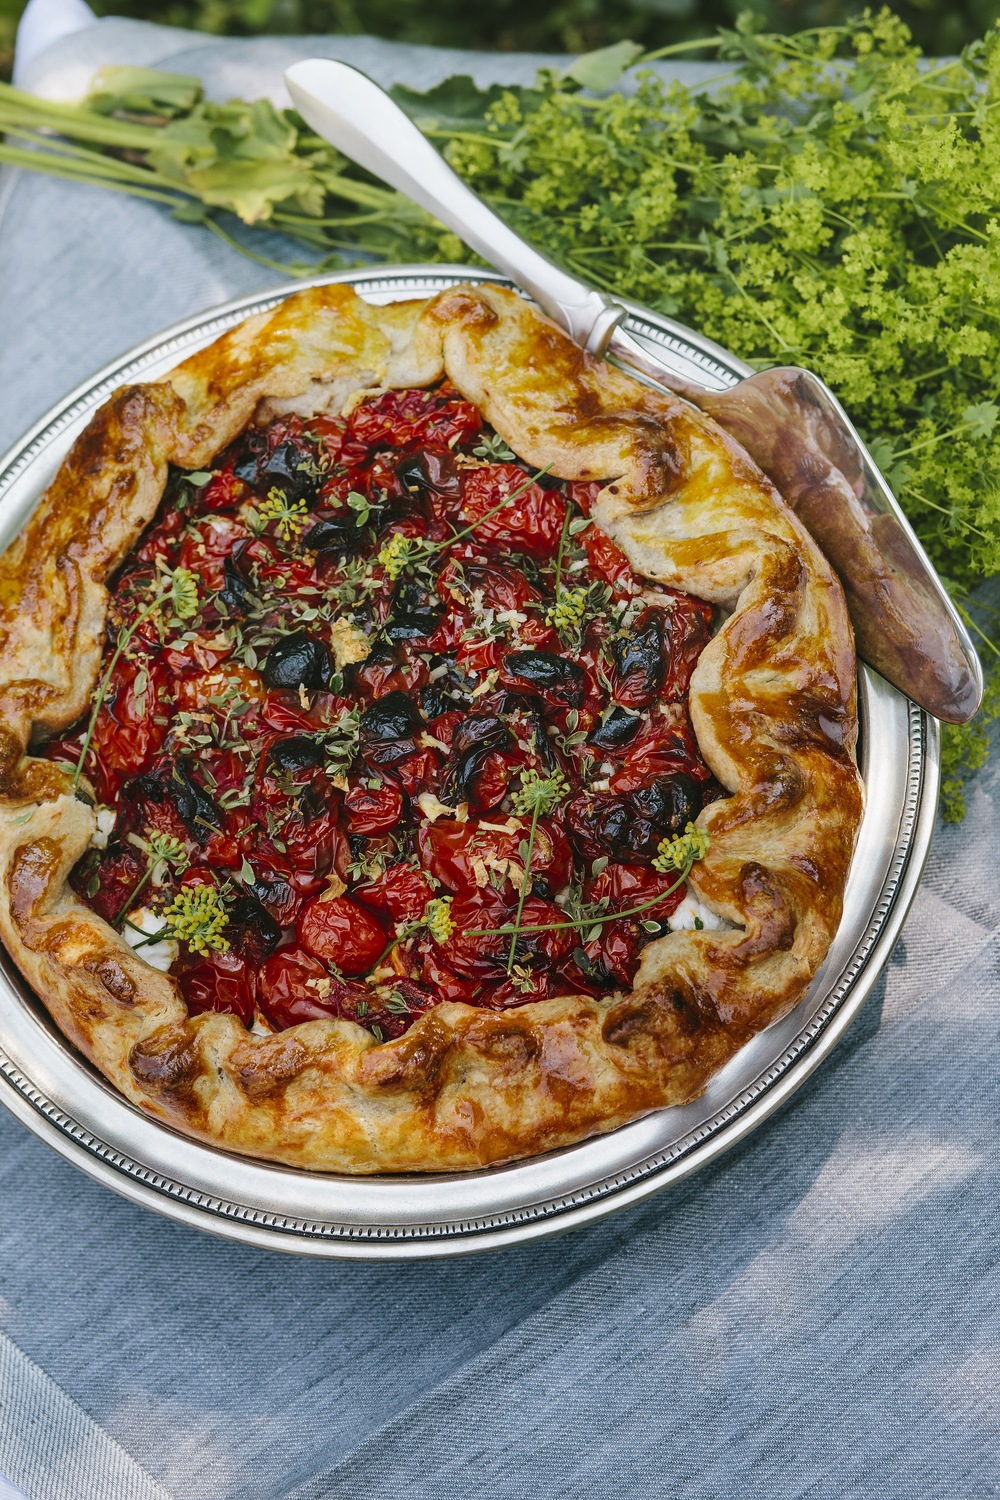 Tomato Galette with Goat Cheese & Garden Herbs